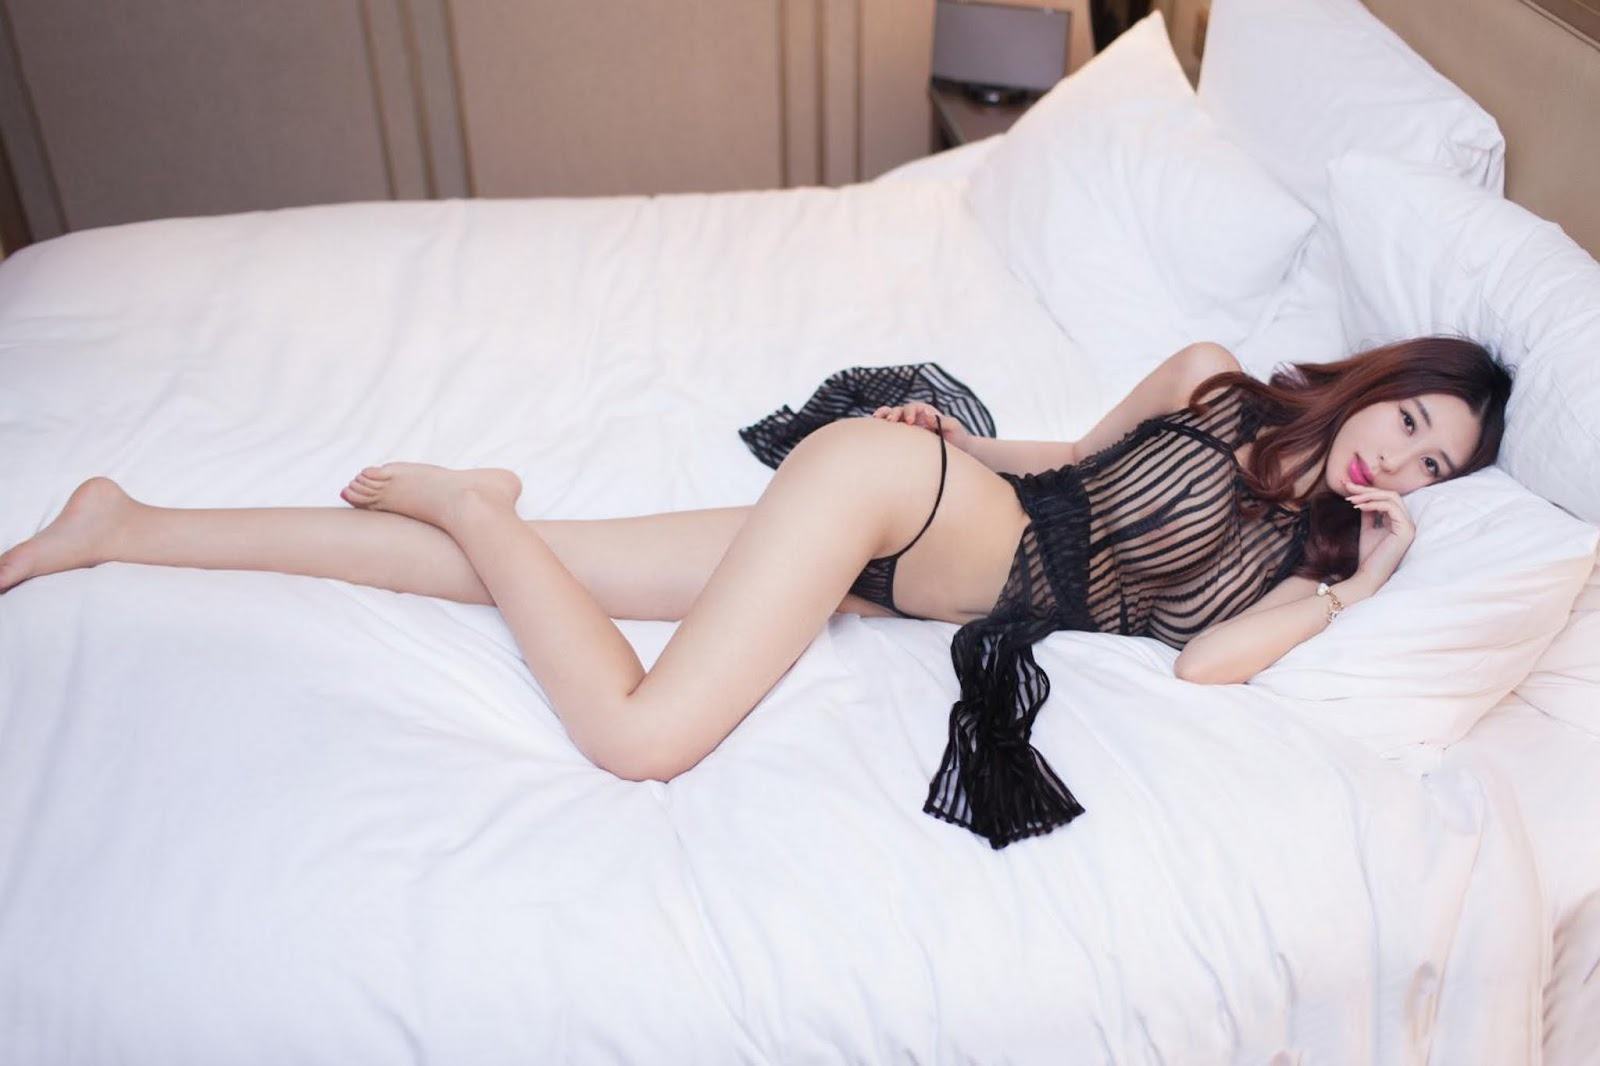 25 - Lake Model Sexy TUIGIRL NO.52 Hot